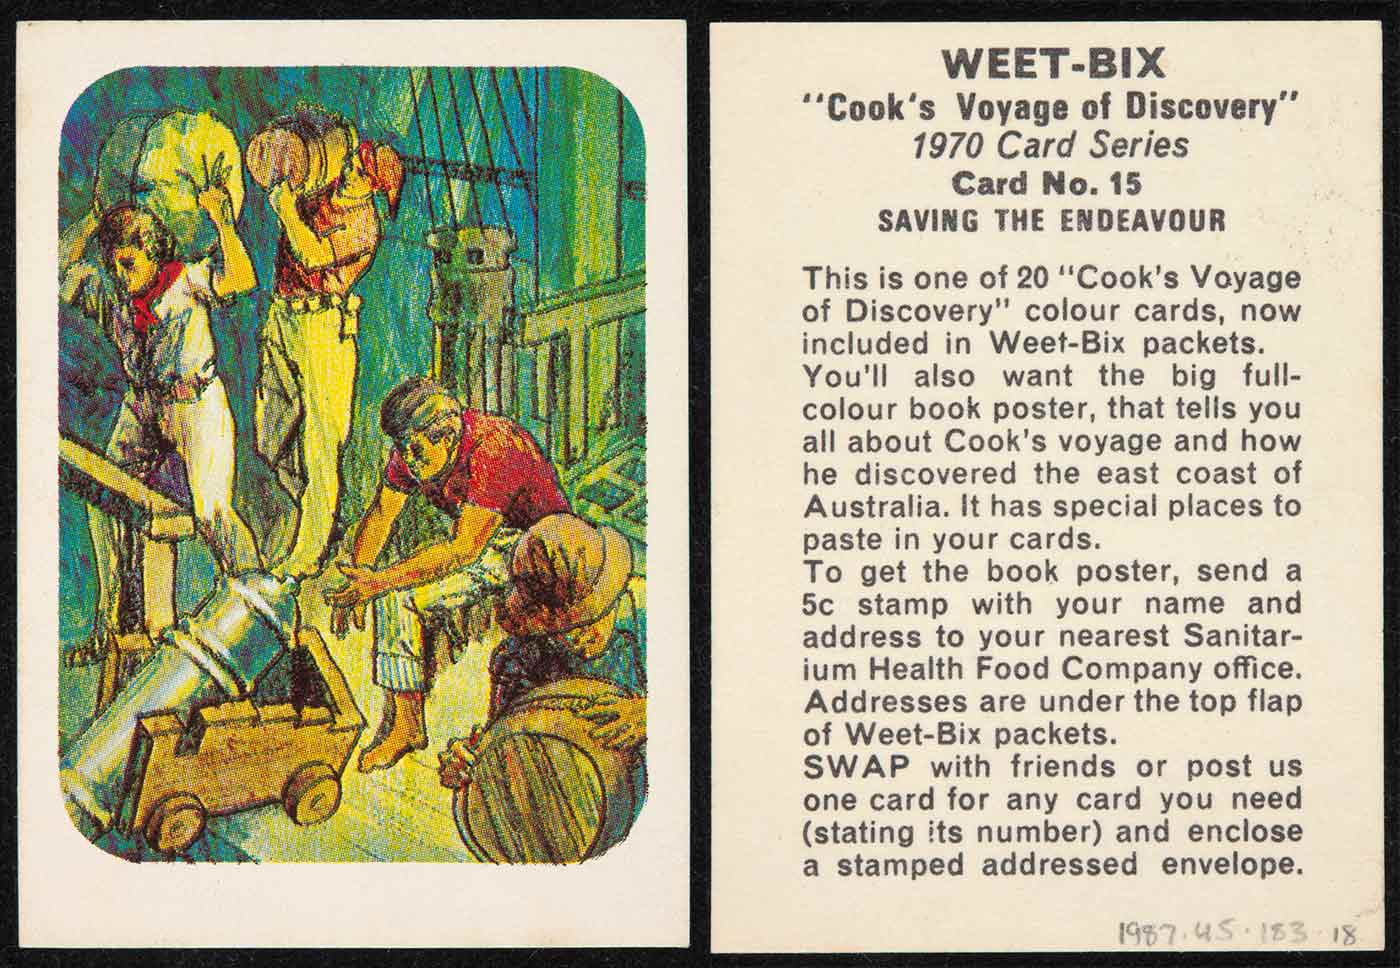 A swap card collected from a Weetbix cereal packet which is numbered 15 from a series of 20. The card features a colour illustration of a sailing crew working on board a ship.Text on the reverse side of the card reads 'WEET-BIX /